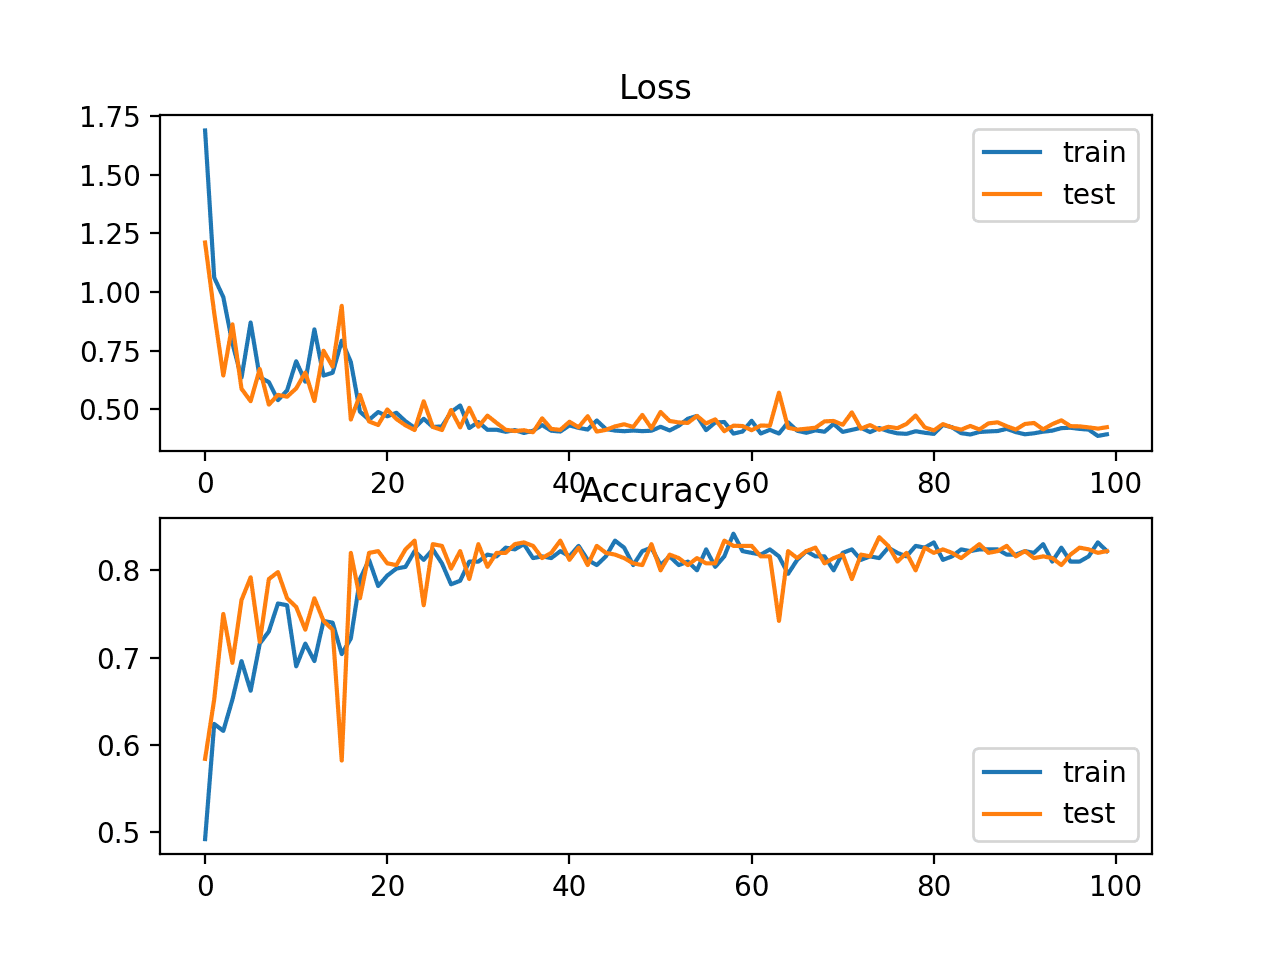 Line Plots of Cross Entropy Loss and Classification Accuracy over Training Epochs on the Blobs Multi-Class Classification Problem